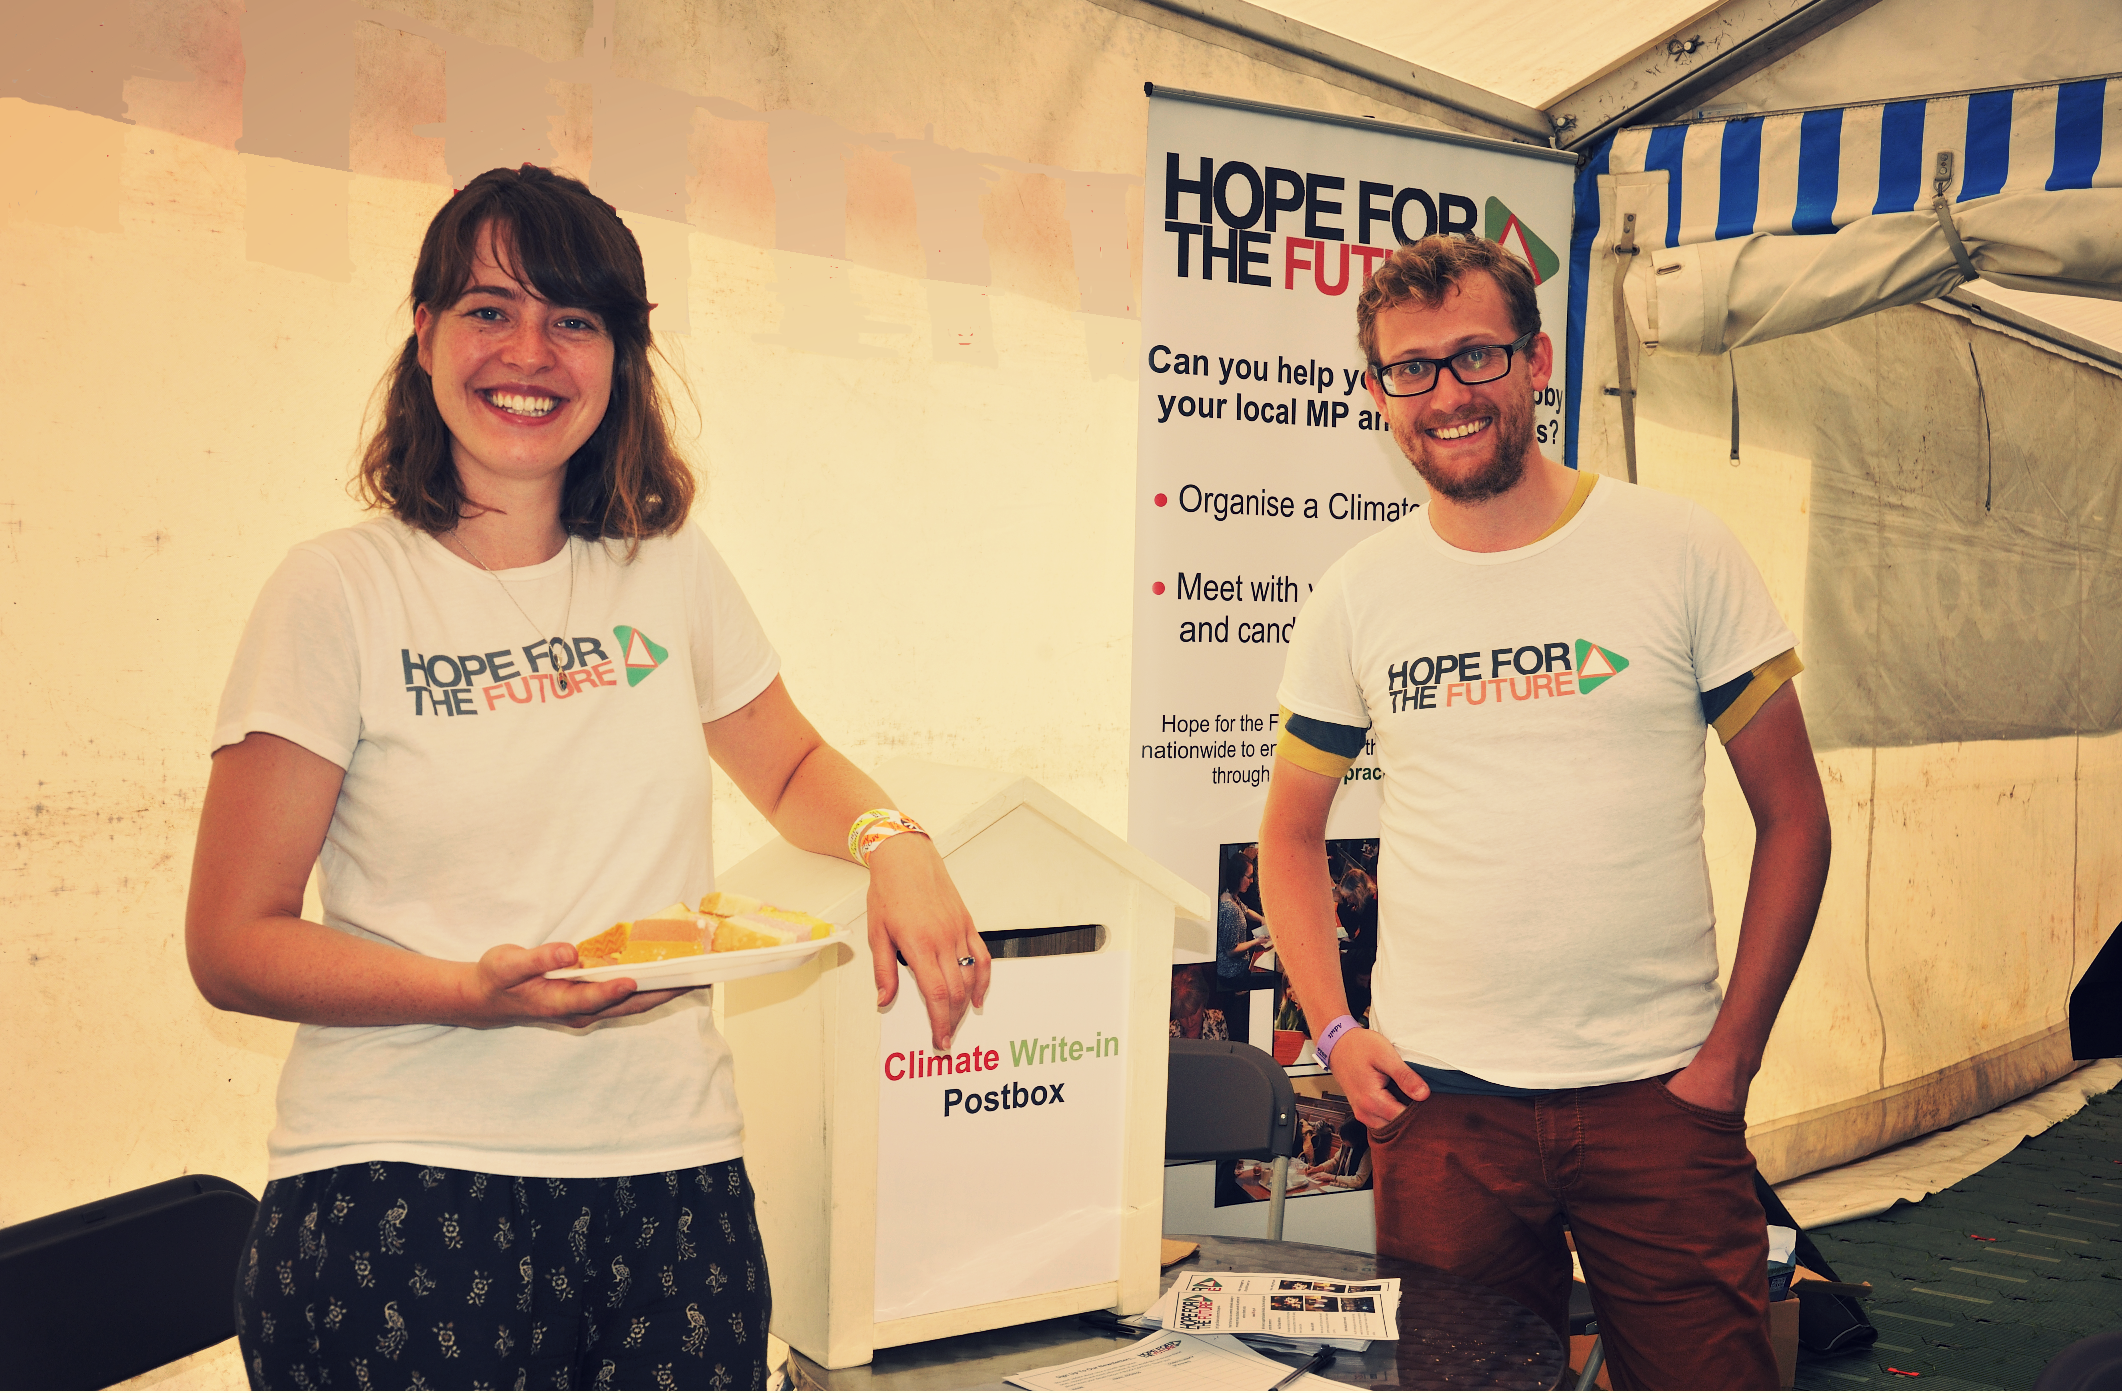 Hope for the Future is here to support anyone wishing to work with their MP on climate change or related issues. Learn more about our tailored advice  here  on get in touch with us at info@hopeftf.org.uk.